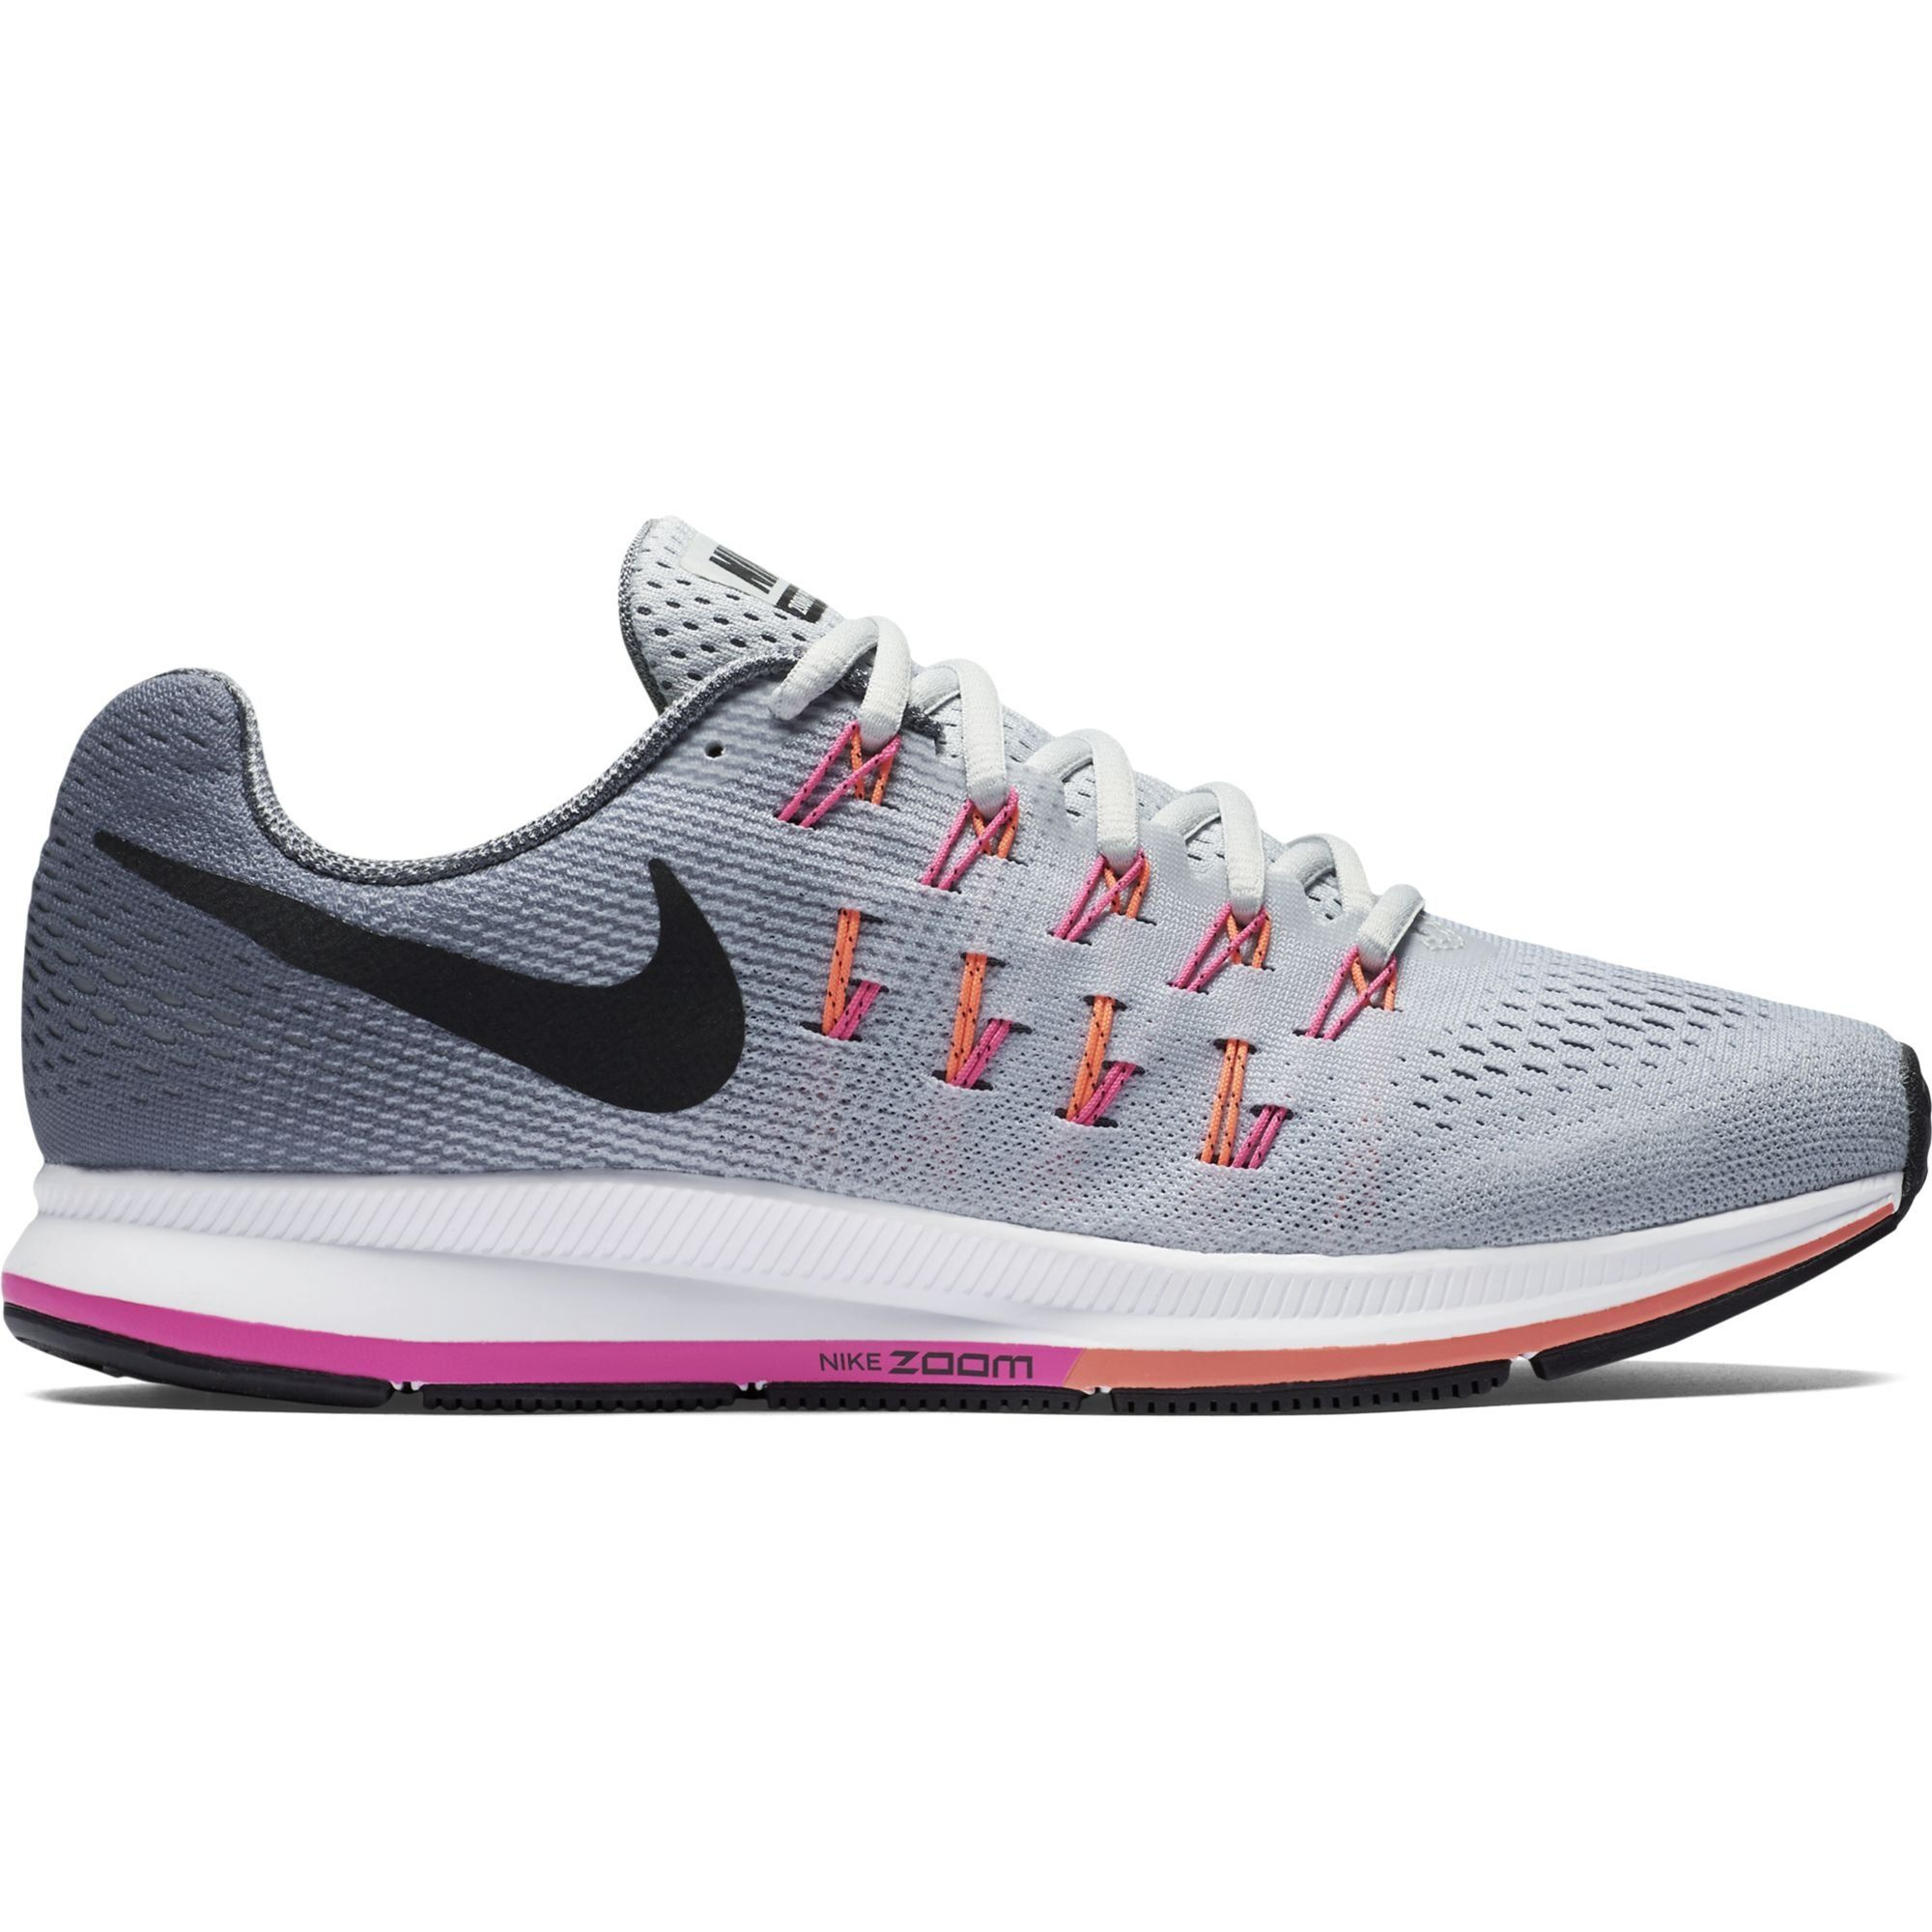 ad127ea289ebb Women s Nike Air Zoom Pegasus 33 (Wide) Running Shoe Platinum Black Grey Pink  Blast Size 7 Wide US. Horizontal and vertical cuts in the crash rail  enhance ...